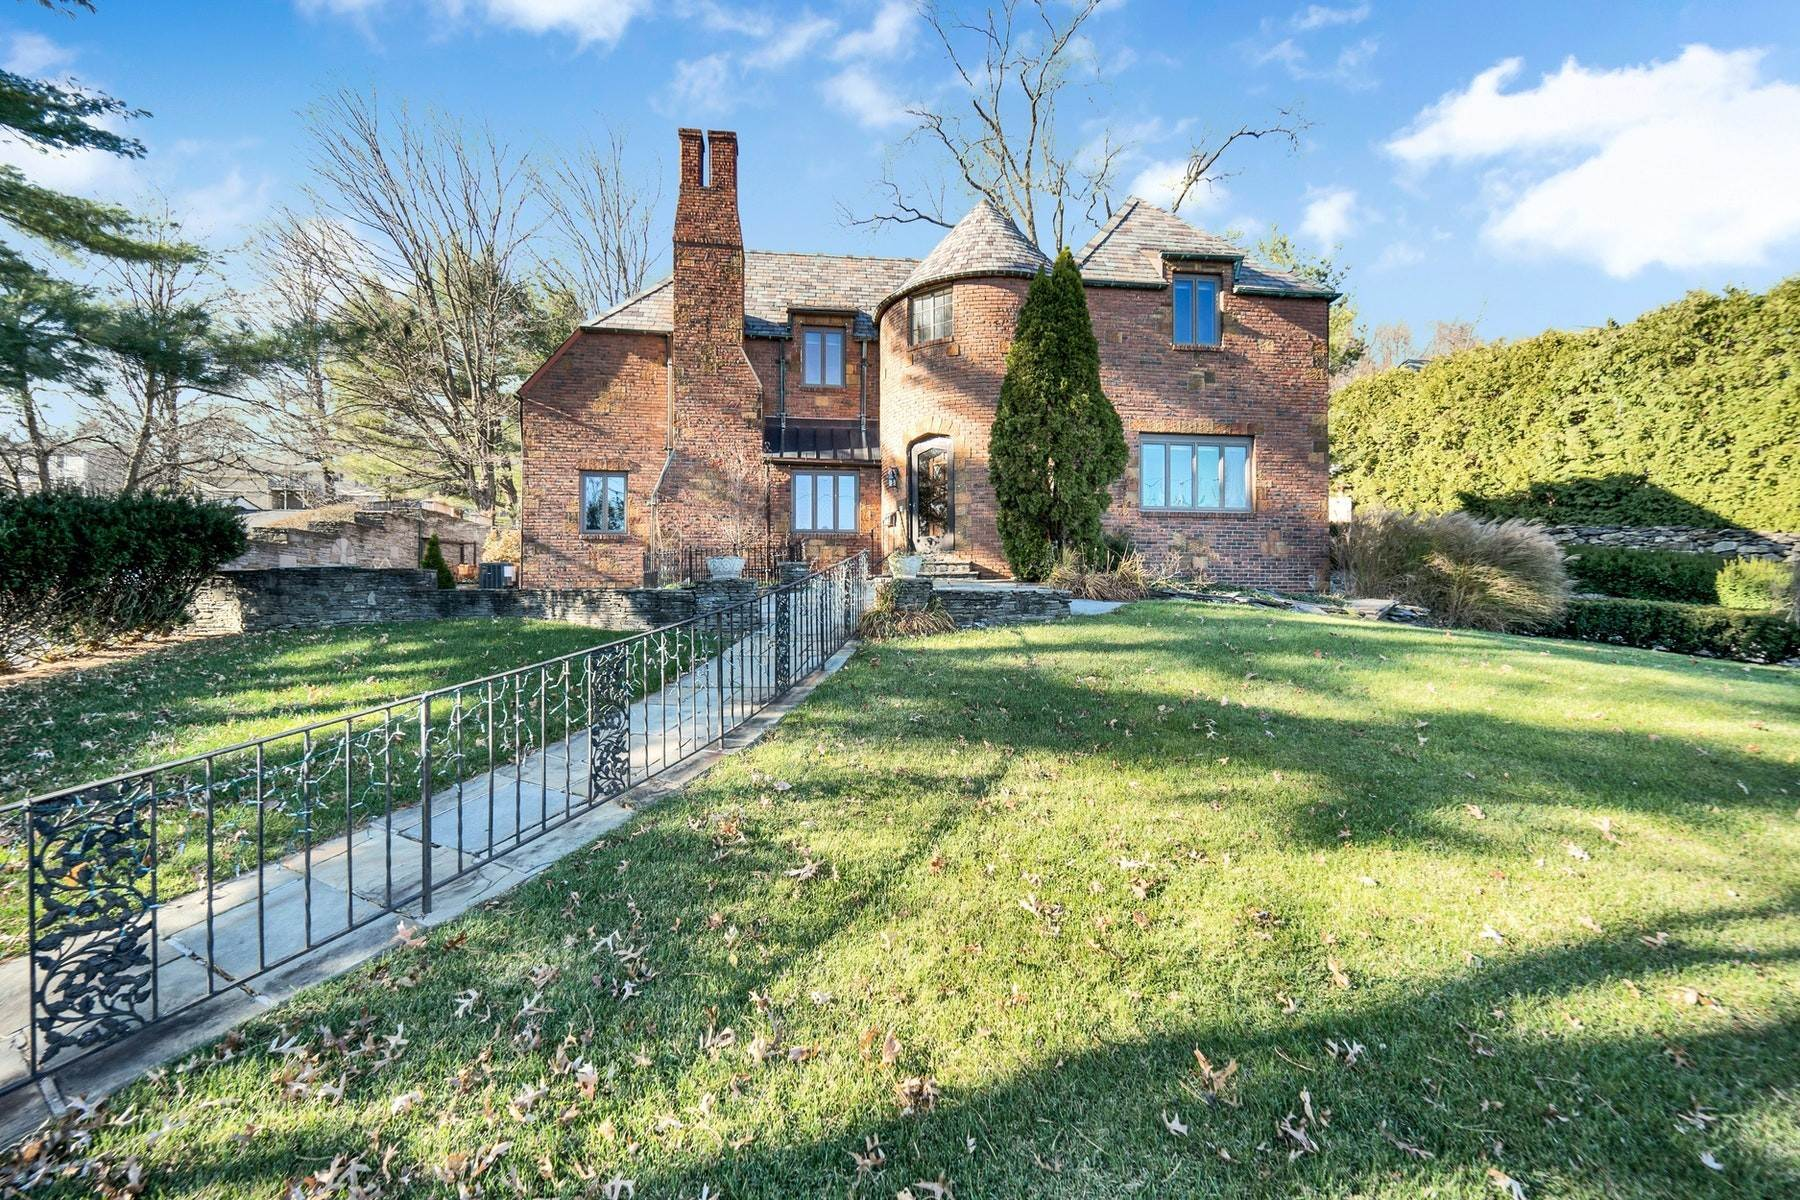 Single Family Homes for Sale at Village Brick Tudor 17 Wisner Terrace Goshen, New York 10924 United States